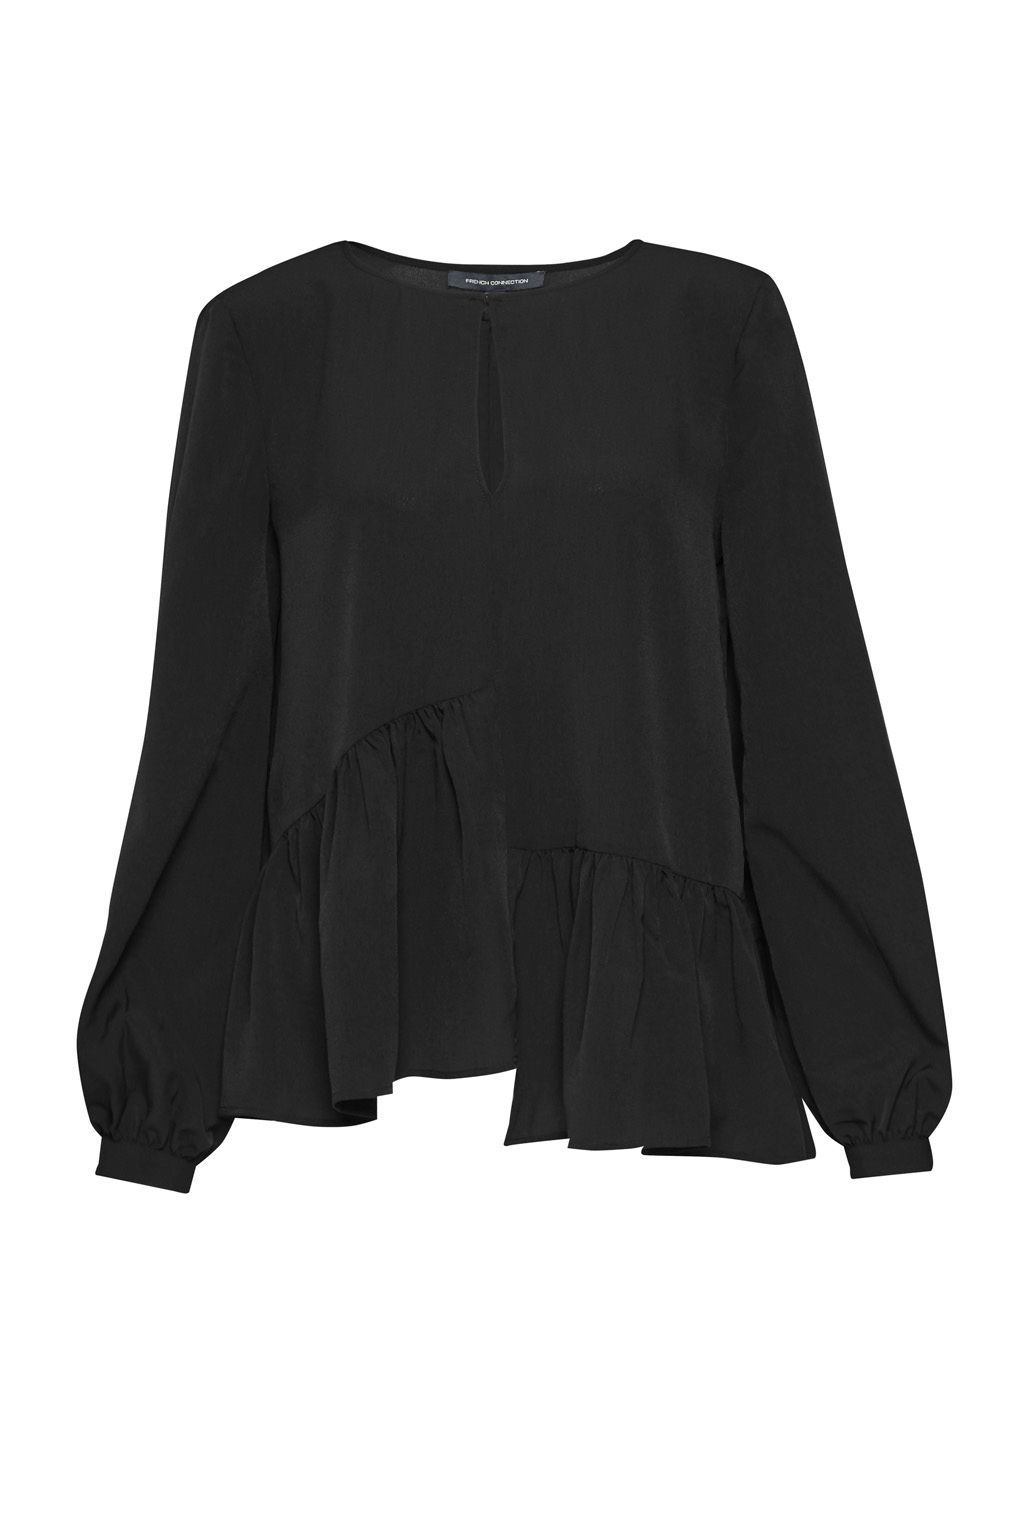 French Connection Lisette Lightweight Crepe Top, Black